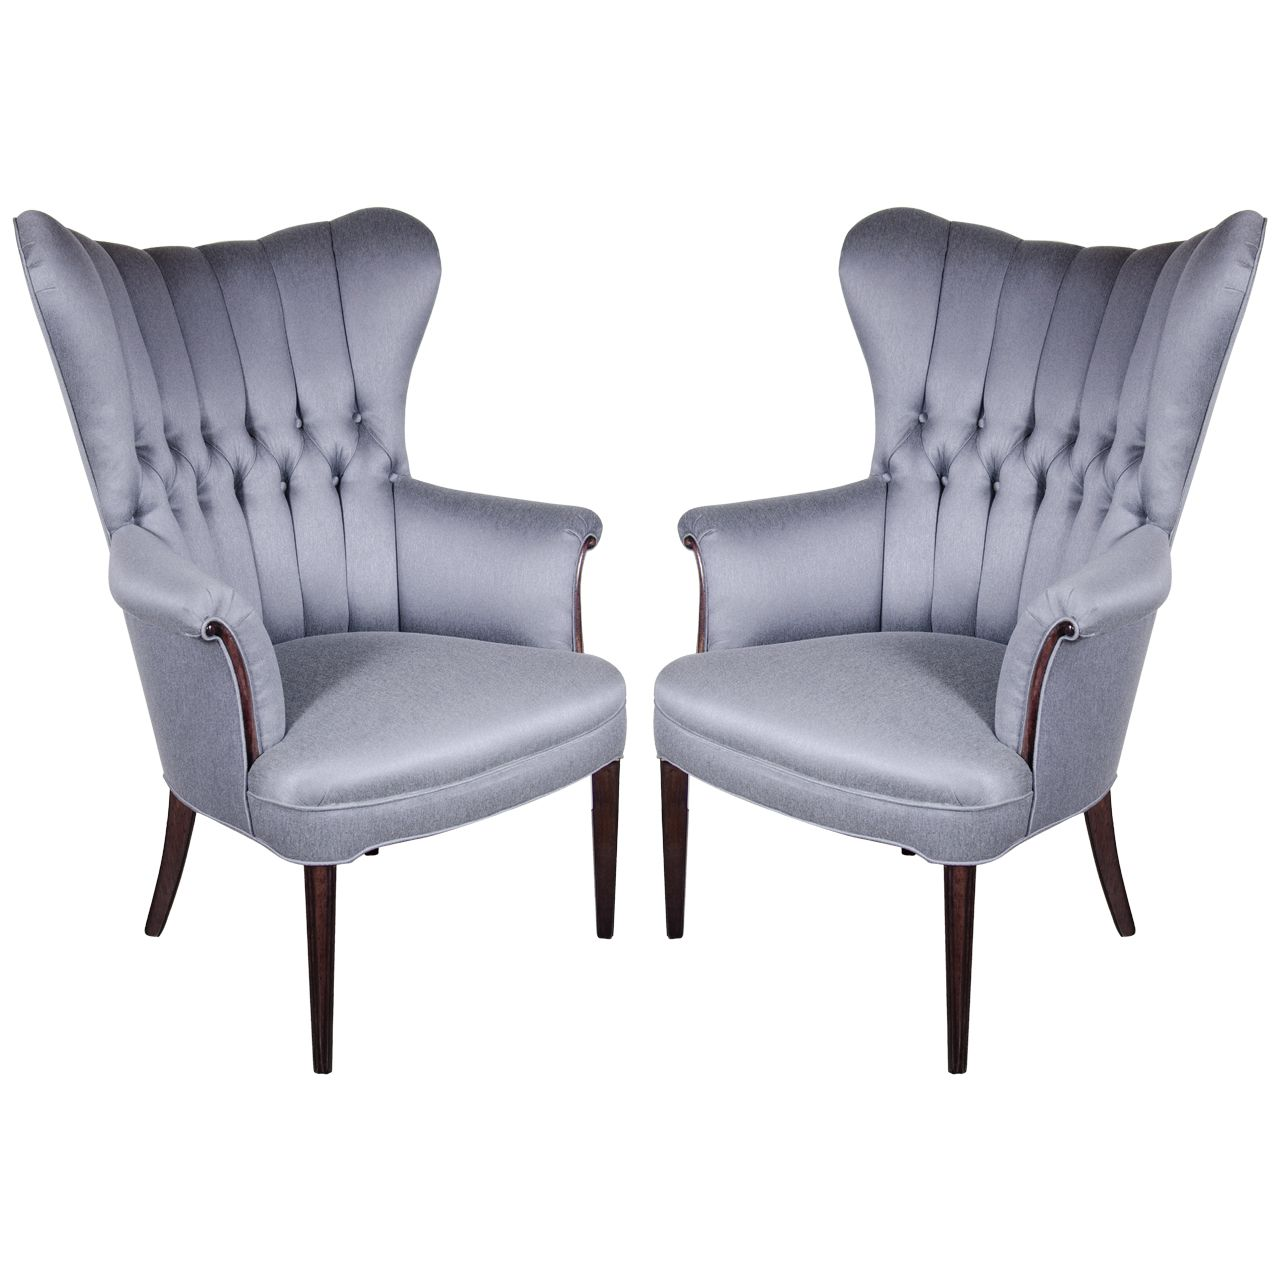 Sophisticated Pair of 1940's Hollywood Tufted & Channel Back Occasional  Chairs | From a unique collection of antique and modern wingback chairs at  ... - Sophisticated Pair Of 1940's Hollywood Tufted And Channel Back